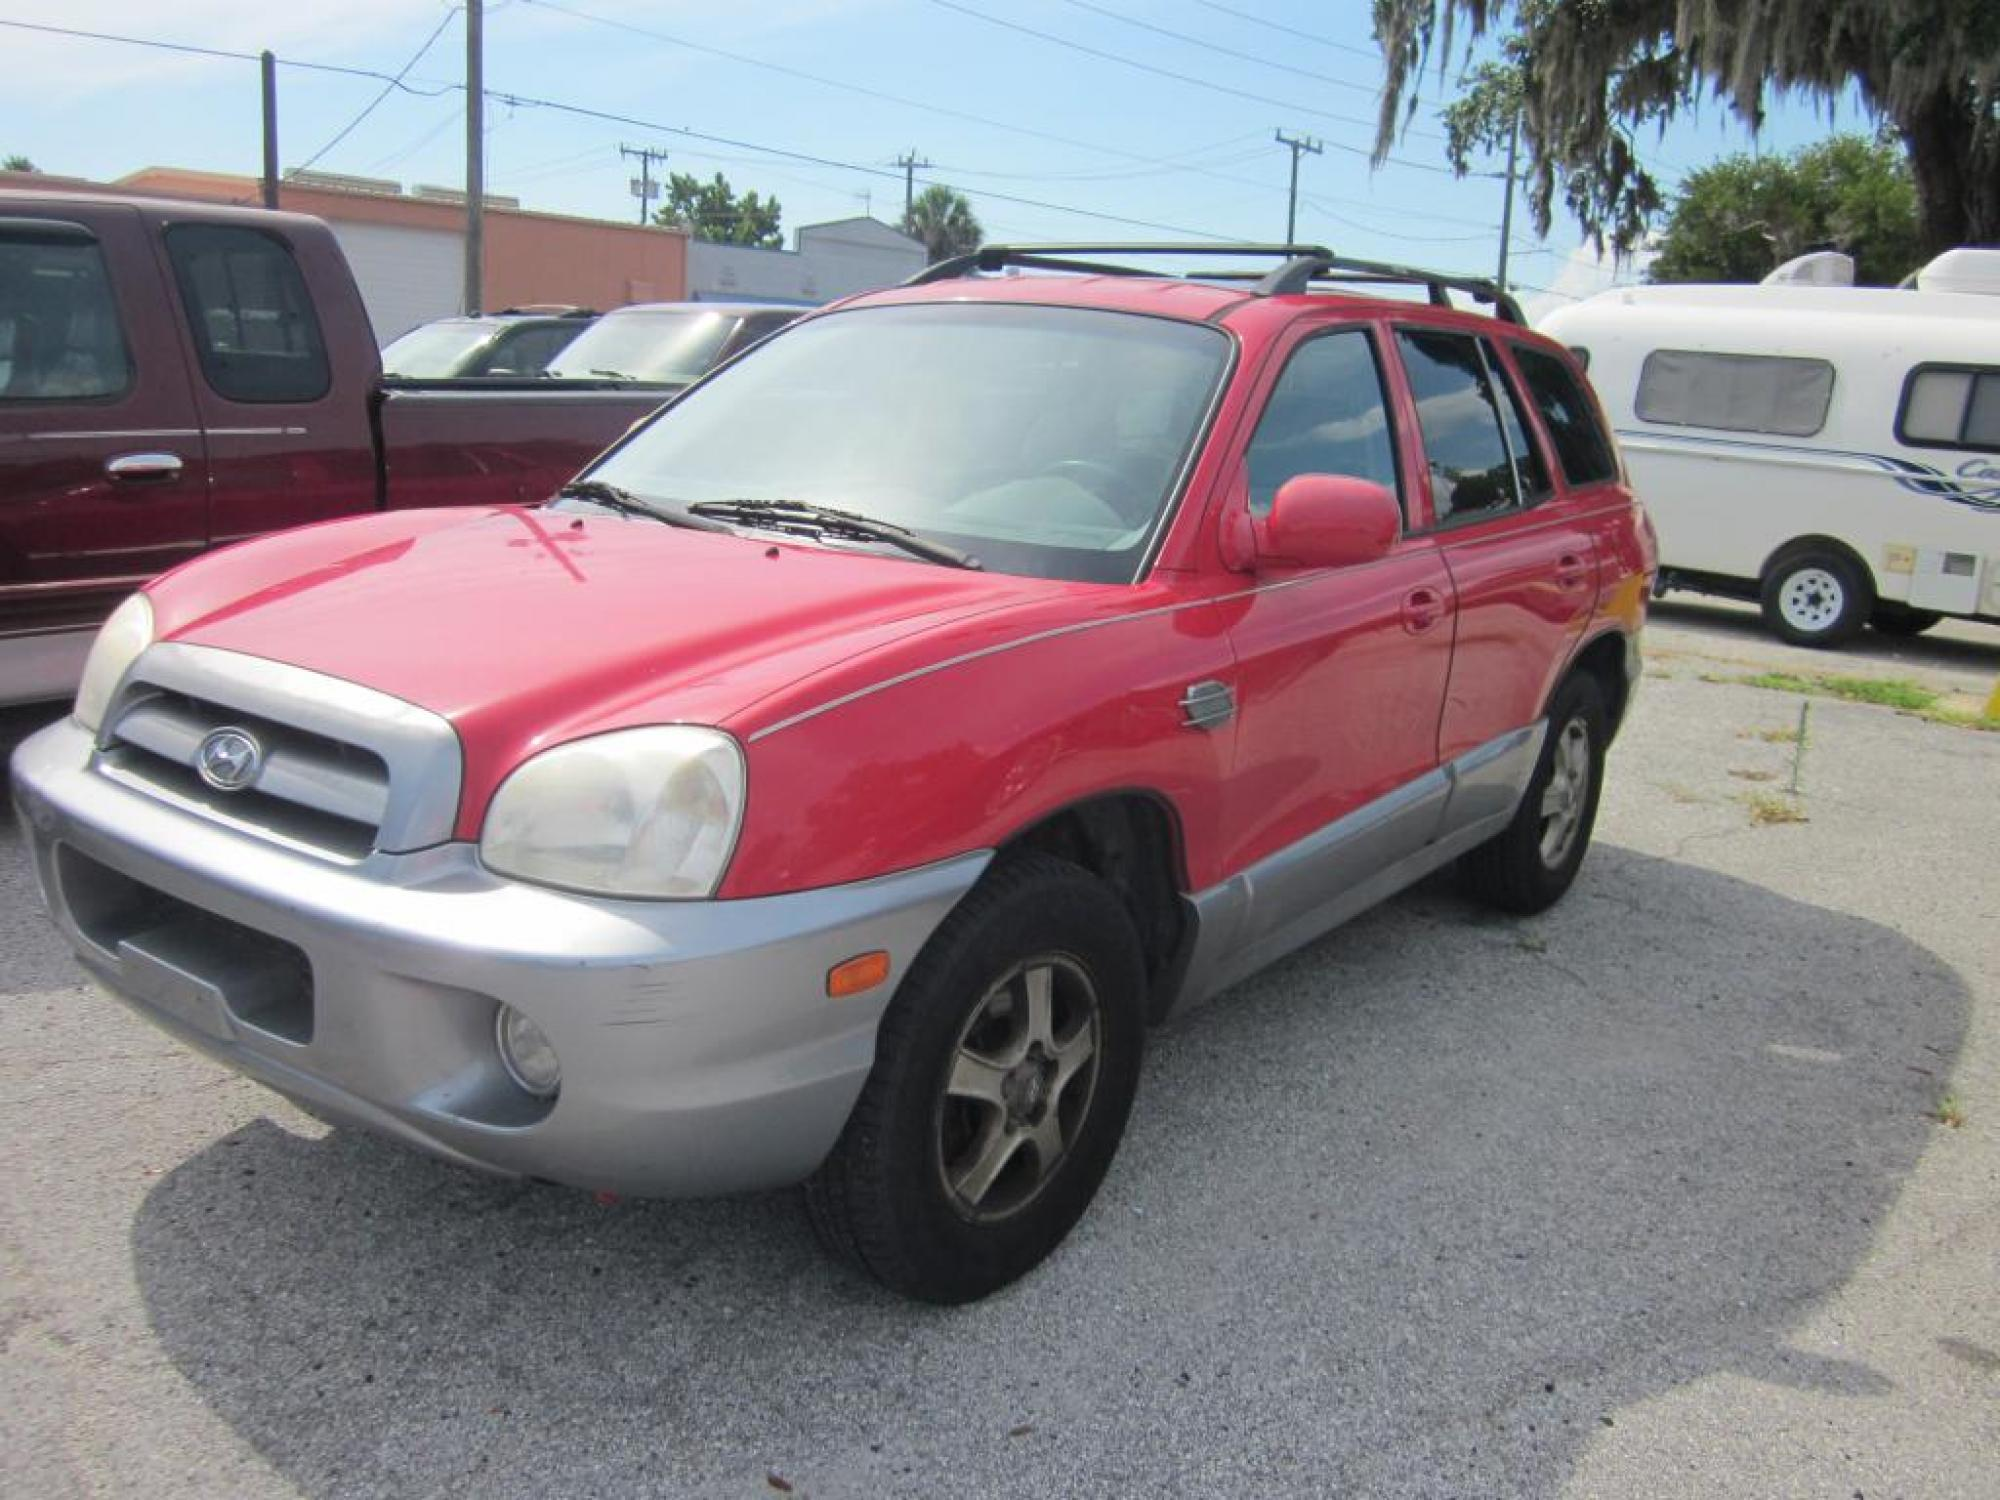 2004 hyundai santa fe for sale in tampa fl cargurus. Black Bedroom Furniture Sets. Home Design Ideas